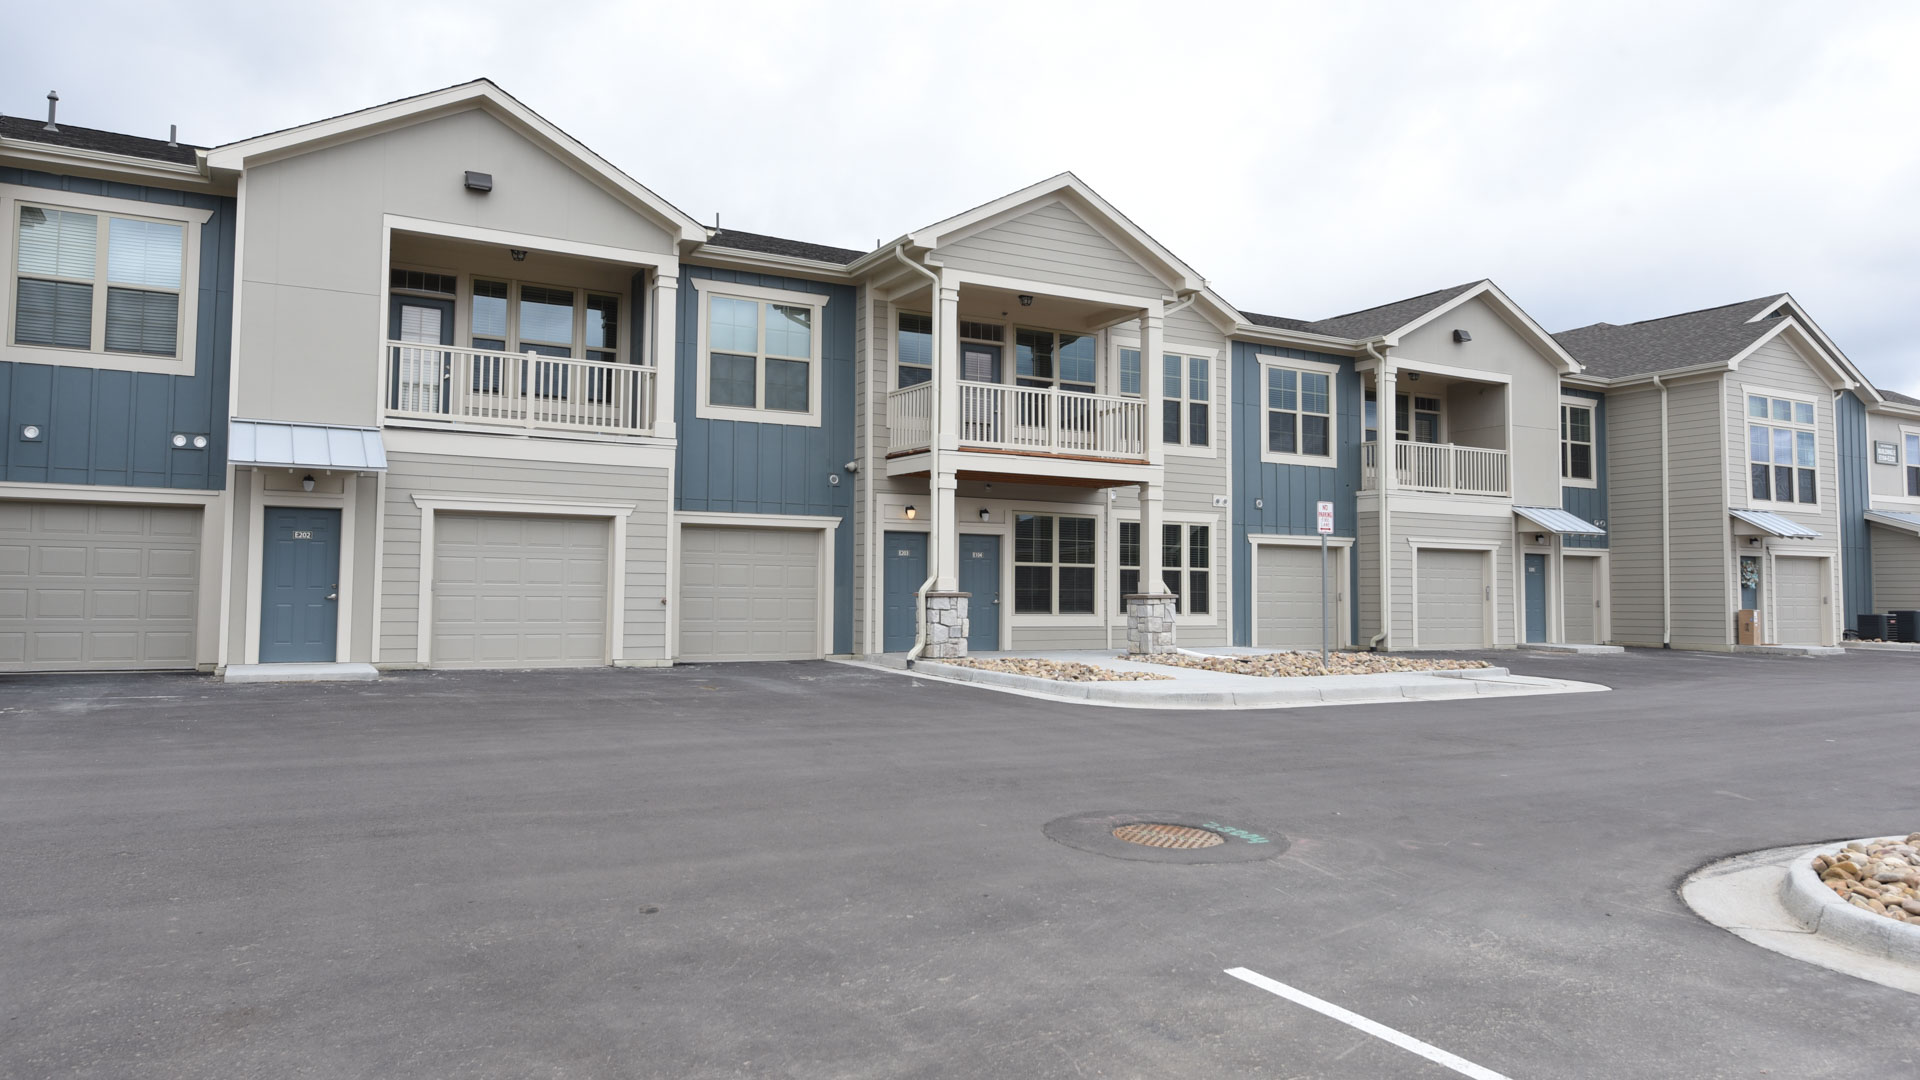 Townhome apartments at Springs at Foothill Farms in Colorado Springs-38